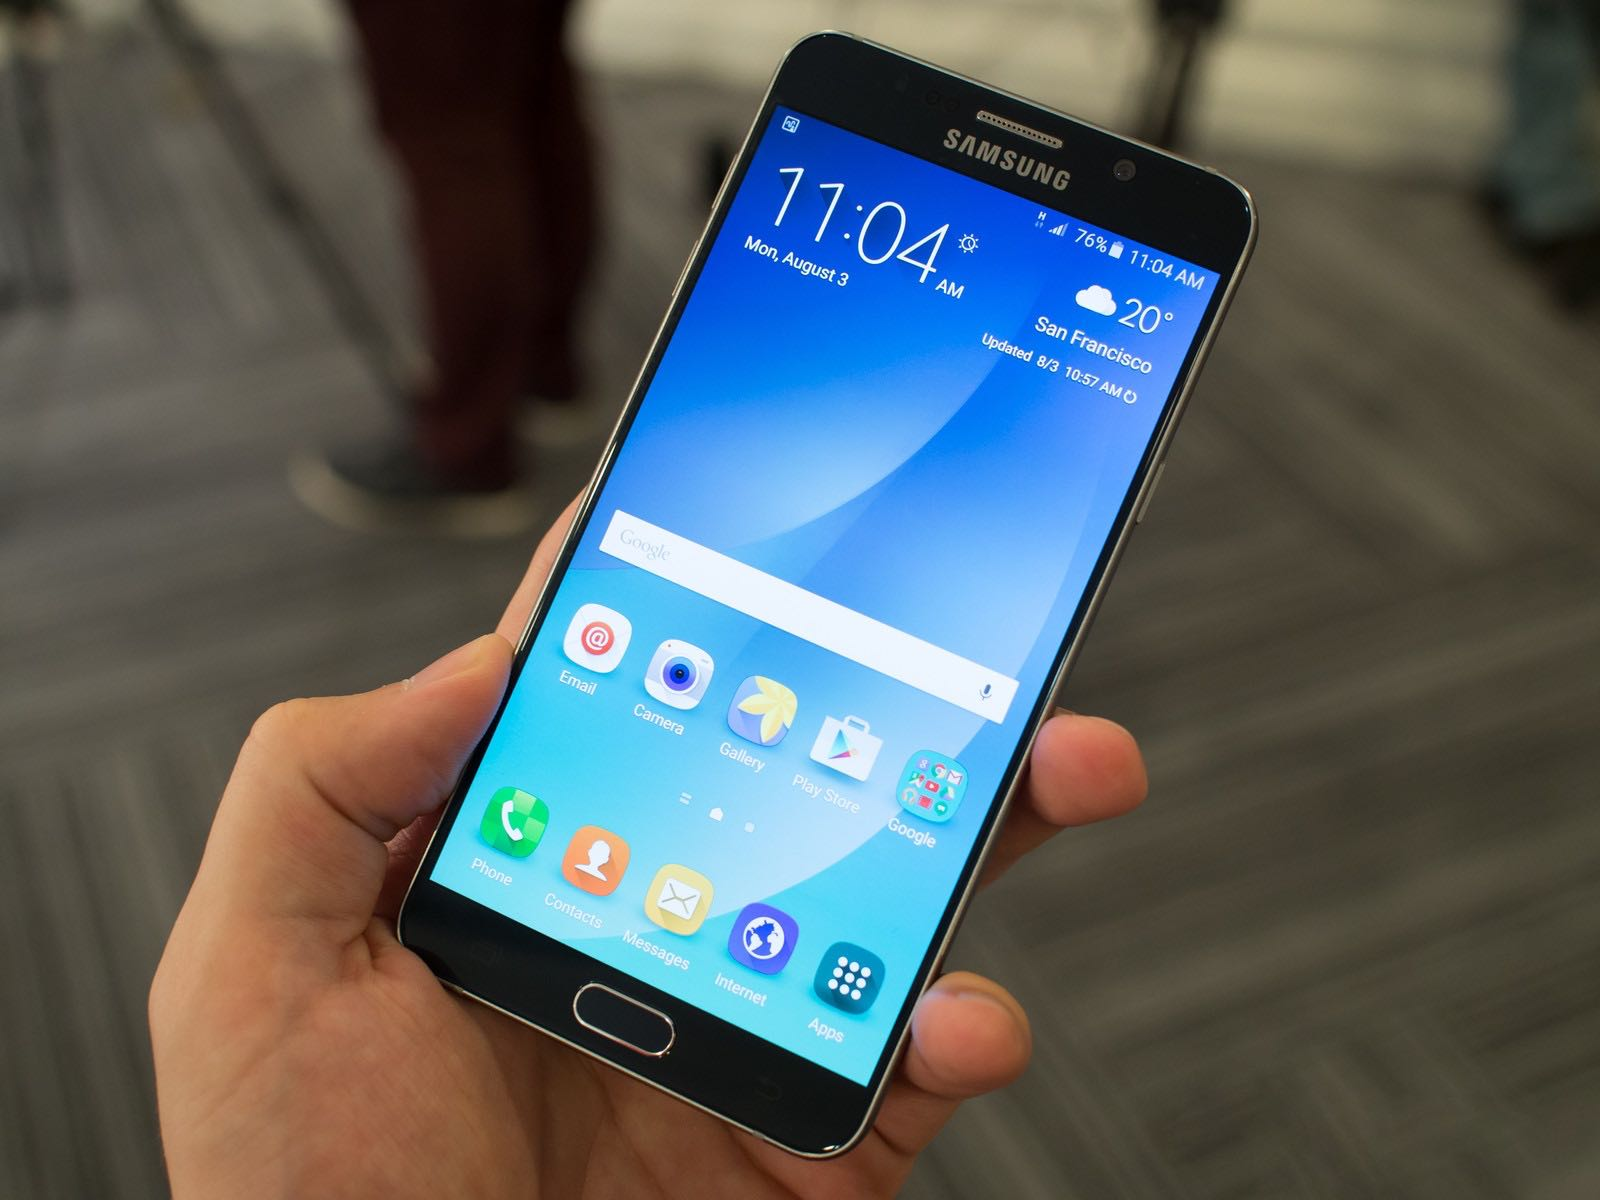 Samsung Galaxy Note 5 Buy shop USA Amazon 3